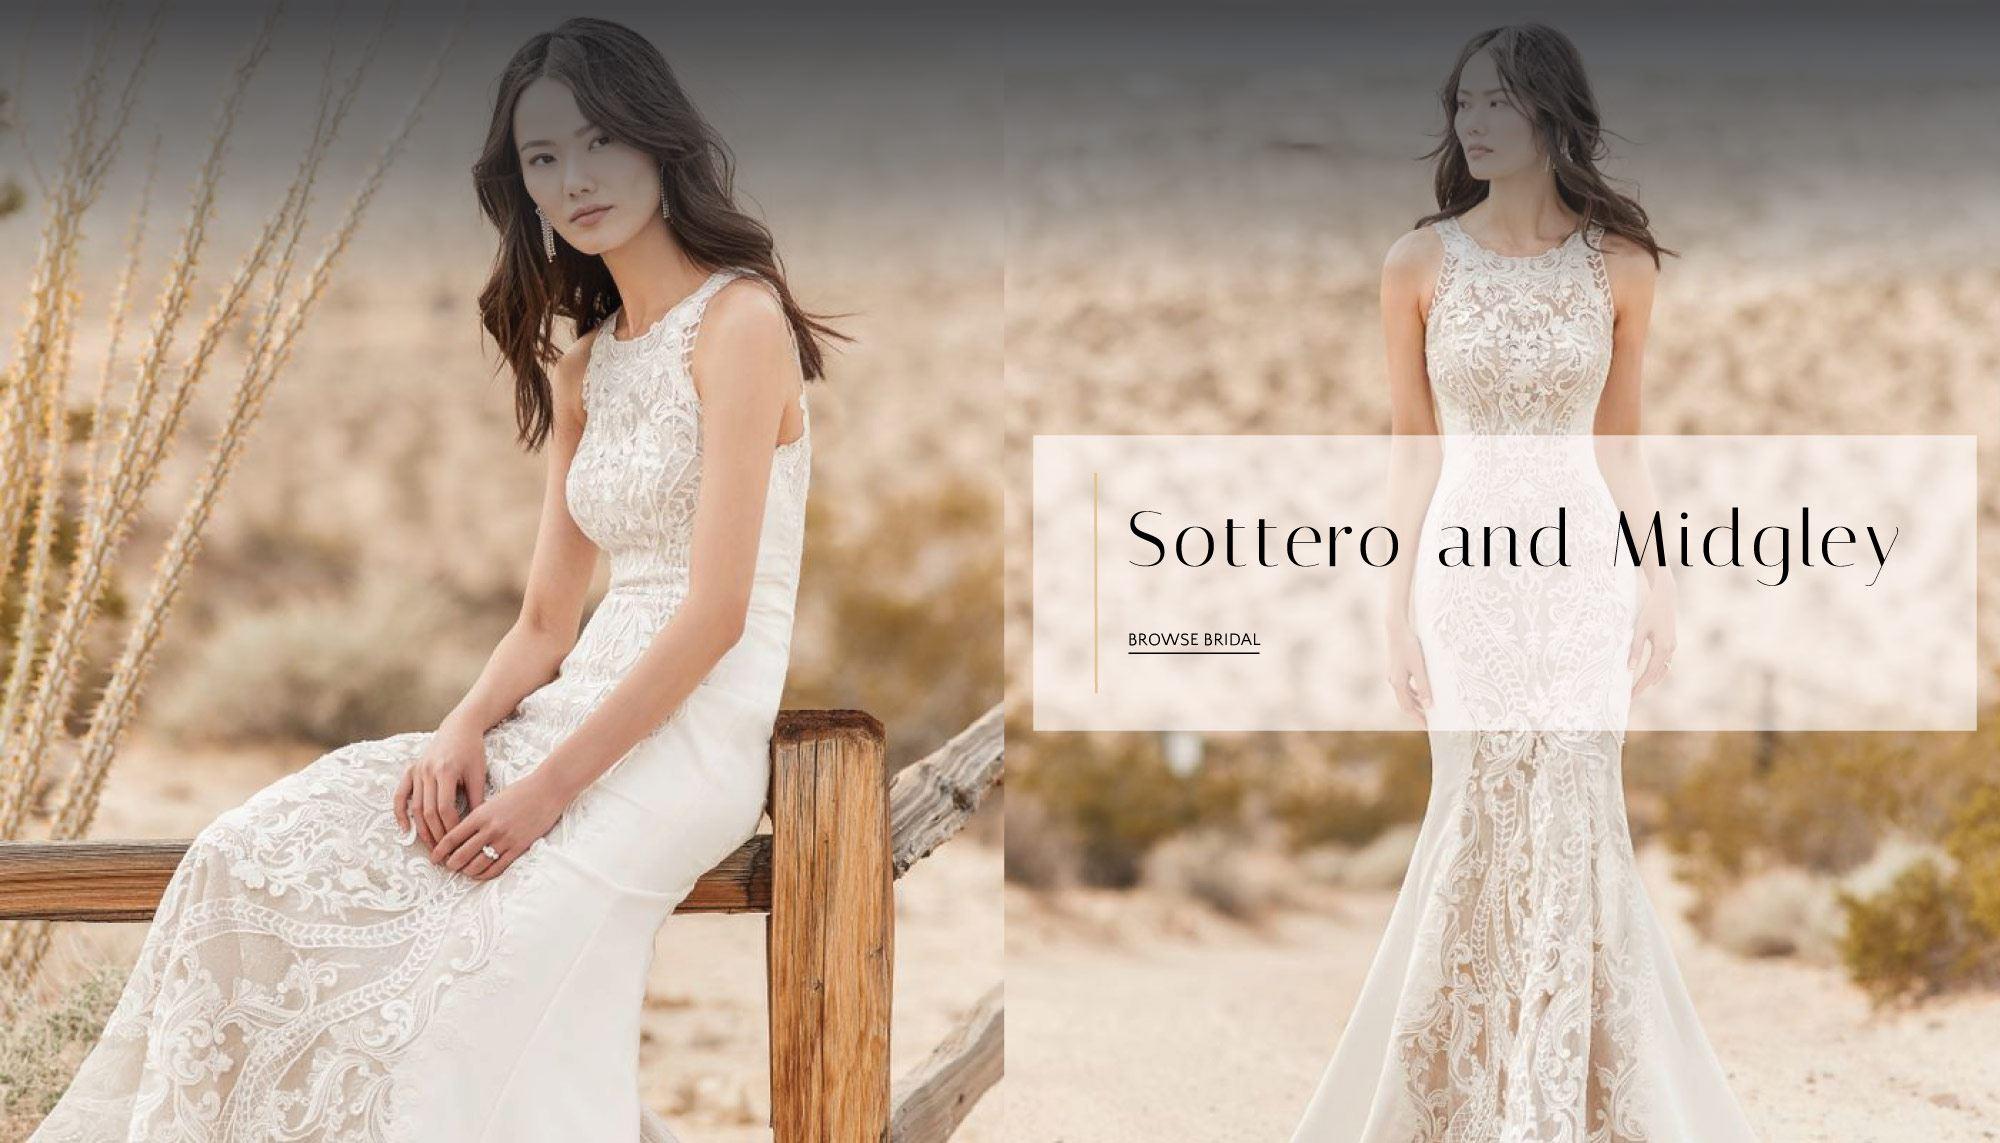 Woman wearing a bridal gown from Sottero and Midgley